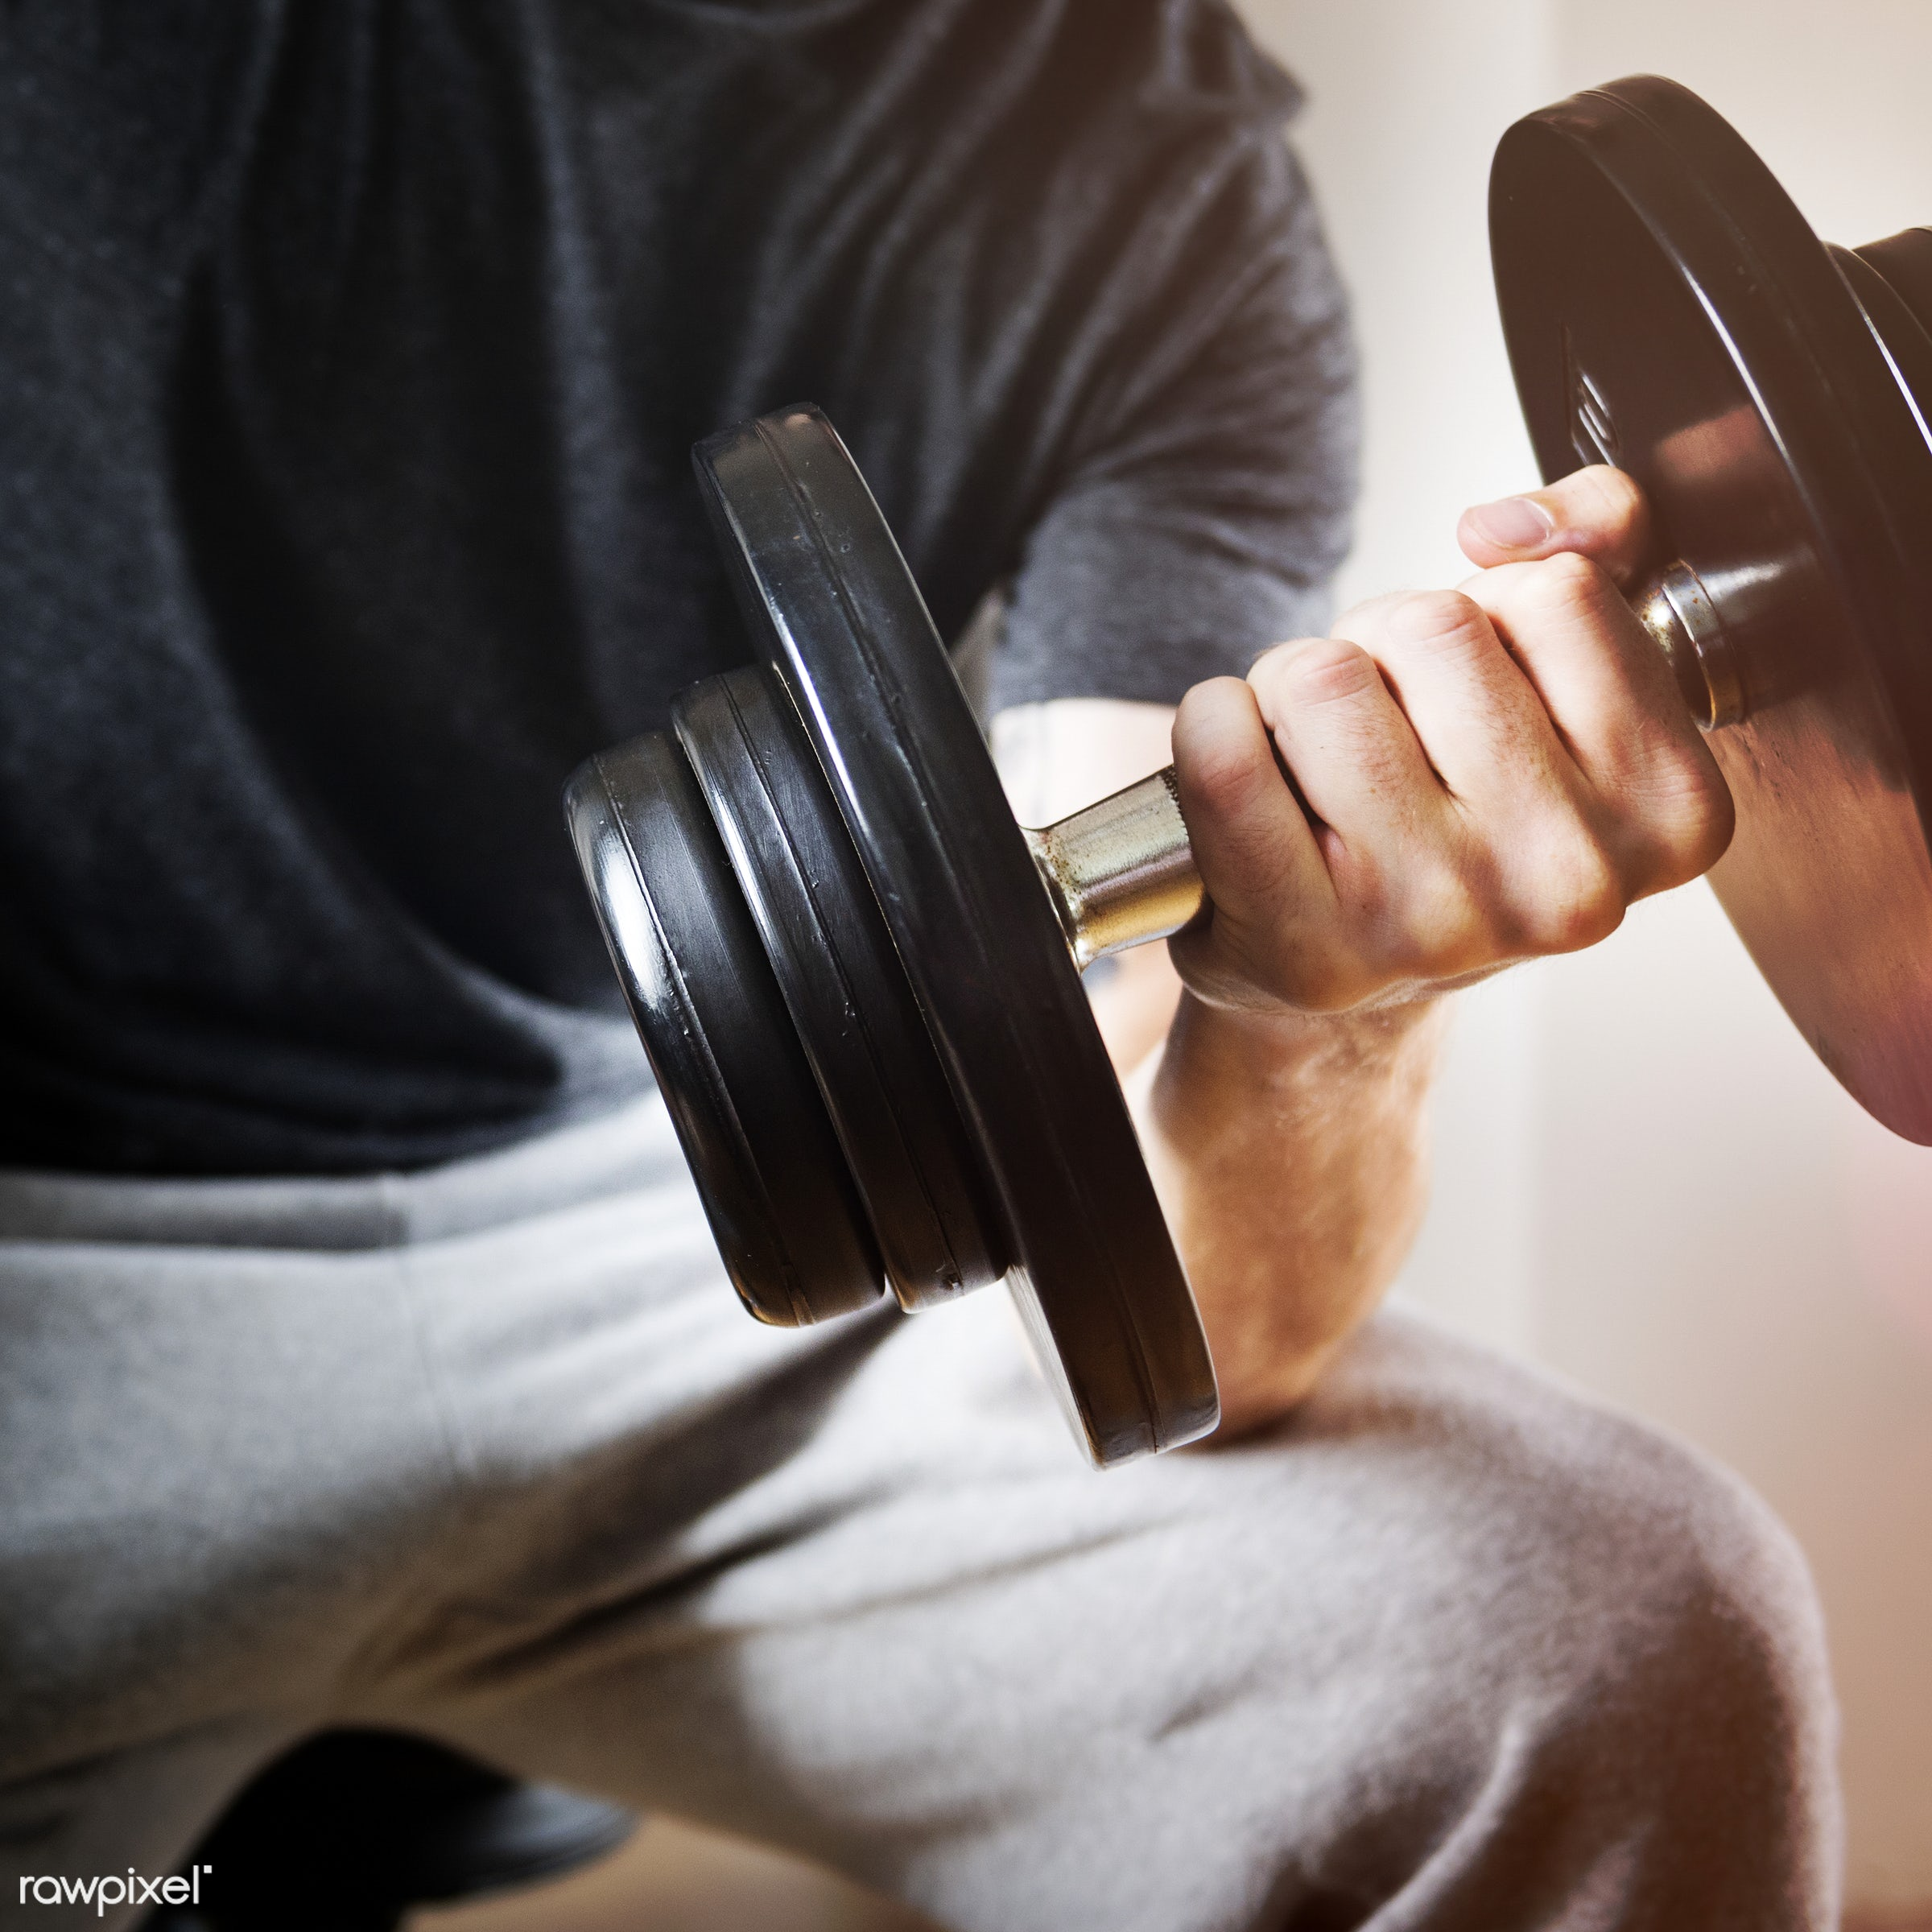 strength, exercise, barbell, leisure, weight training, bodybuilding, wellbeing, weightlifting, alone, closeup, activity